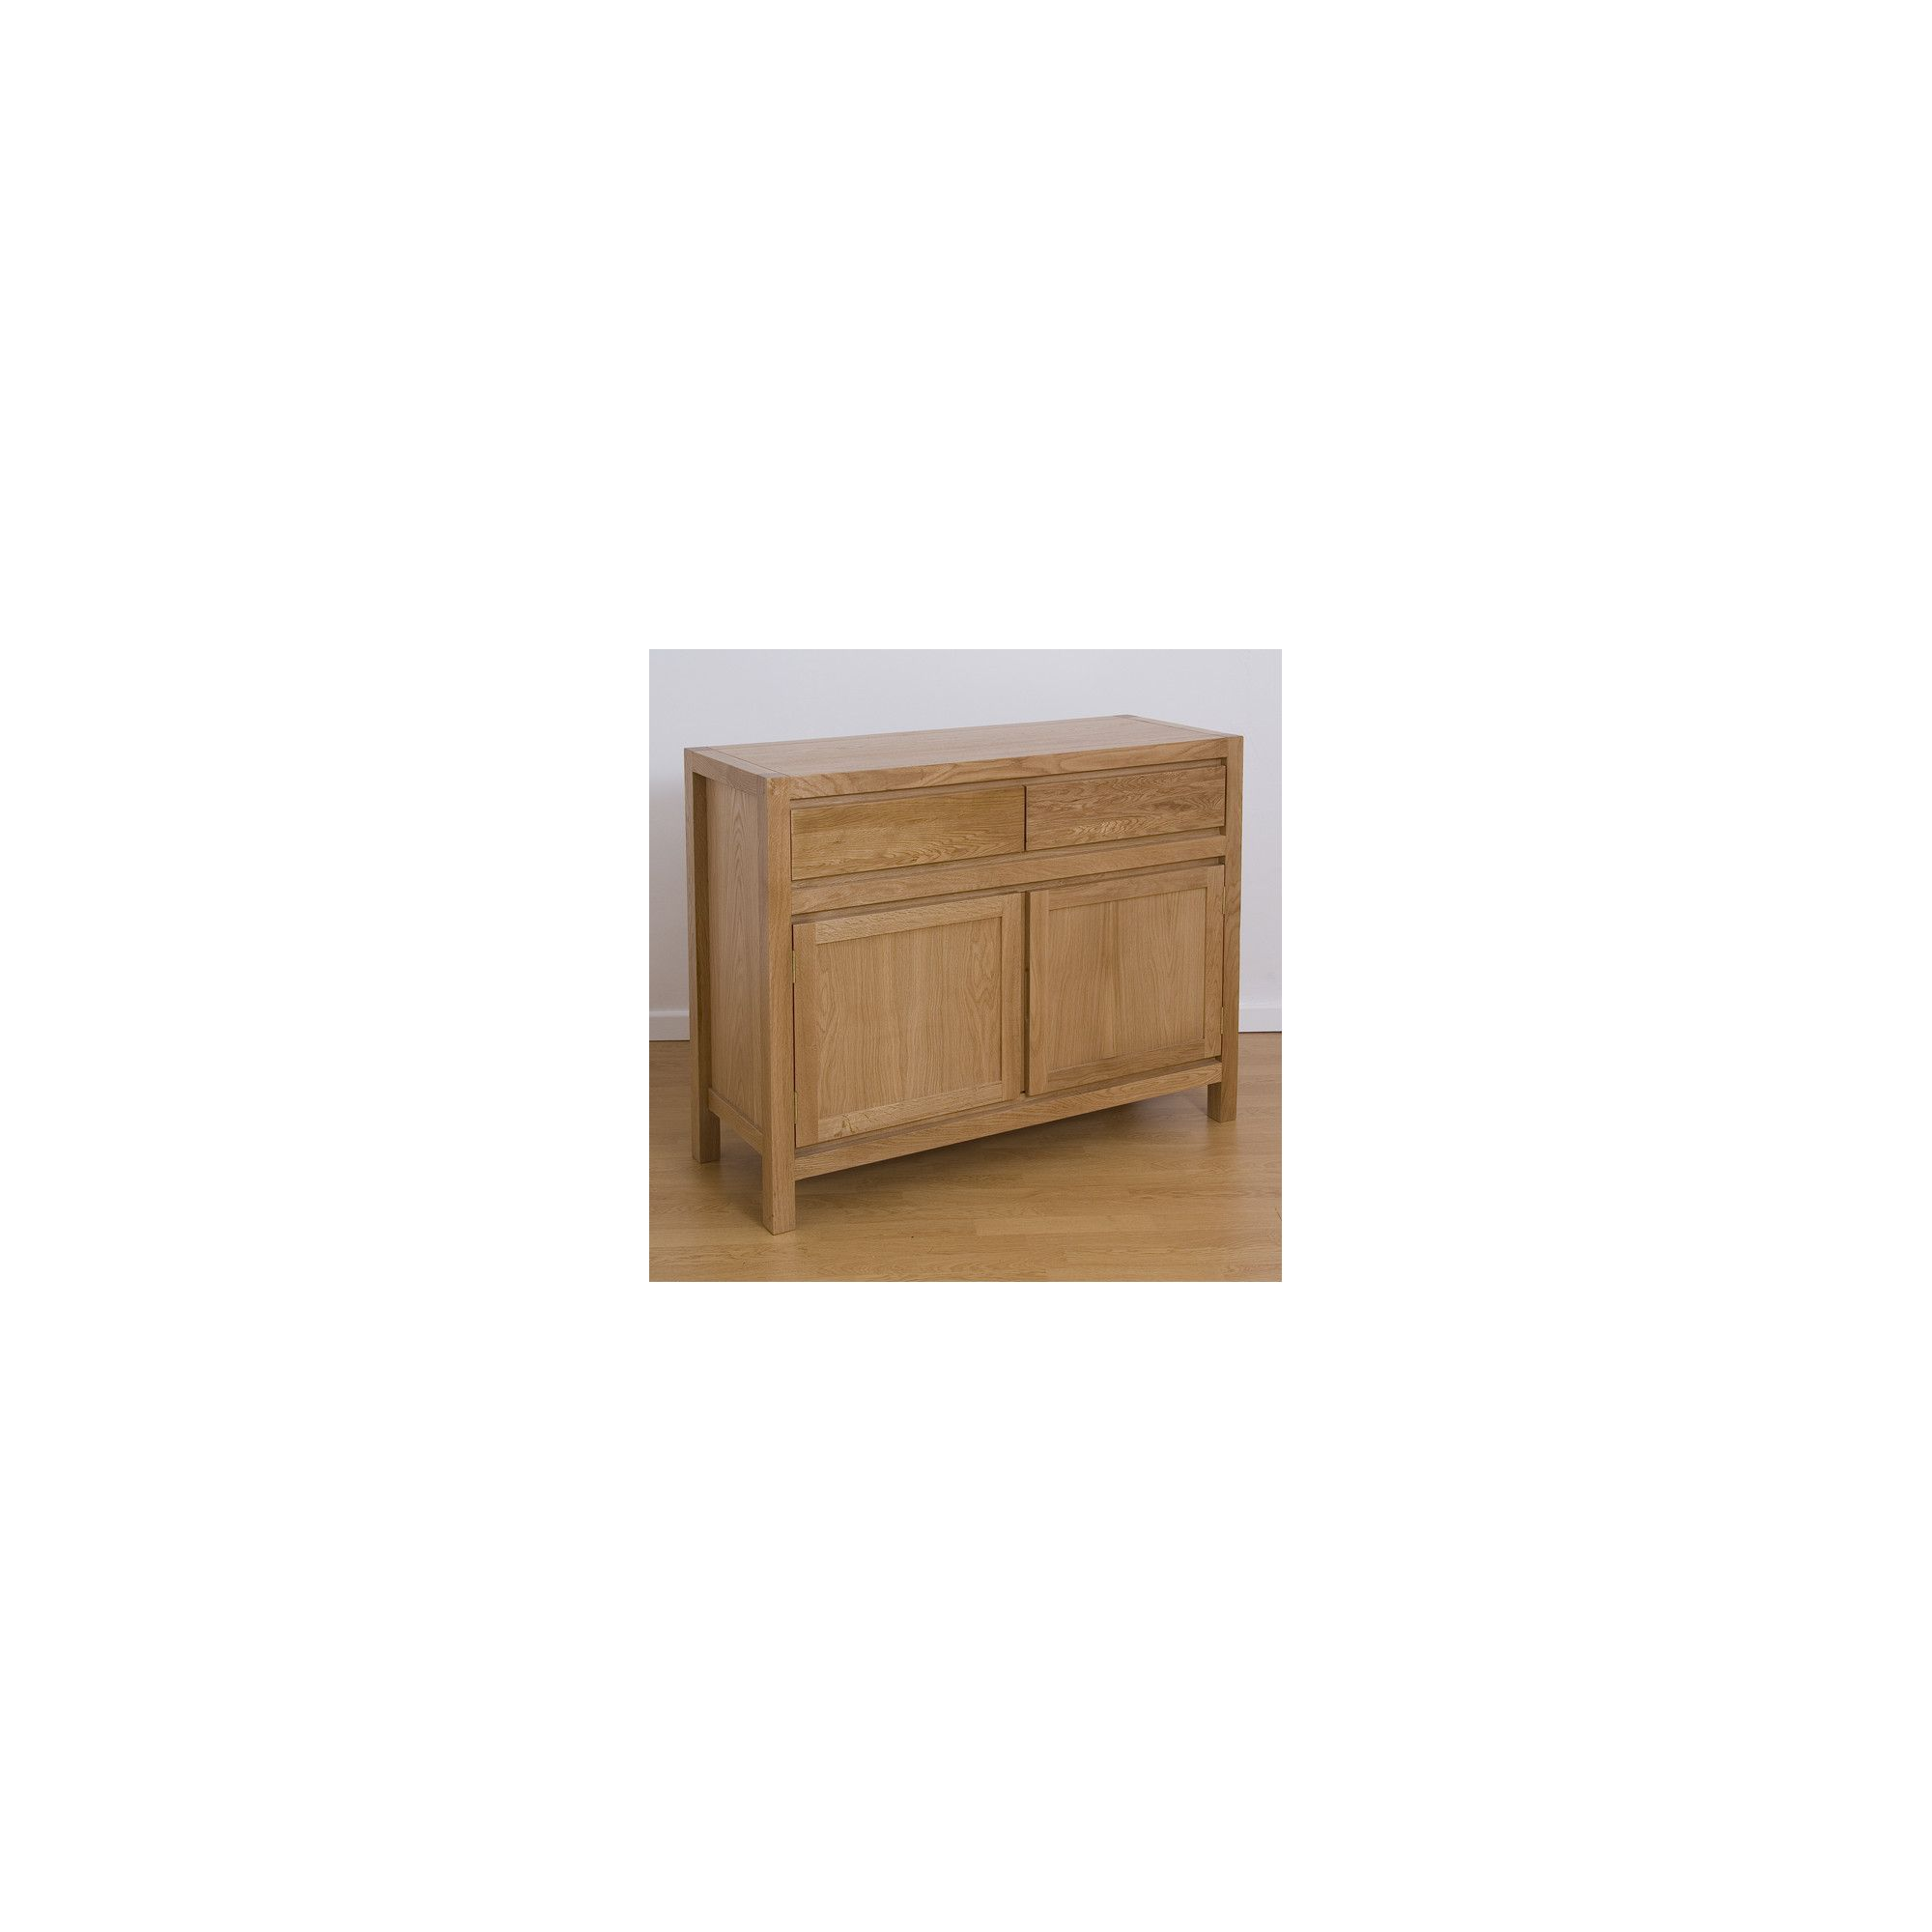 G&P Furniture Small Oak Sideboard at Tescos Direct